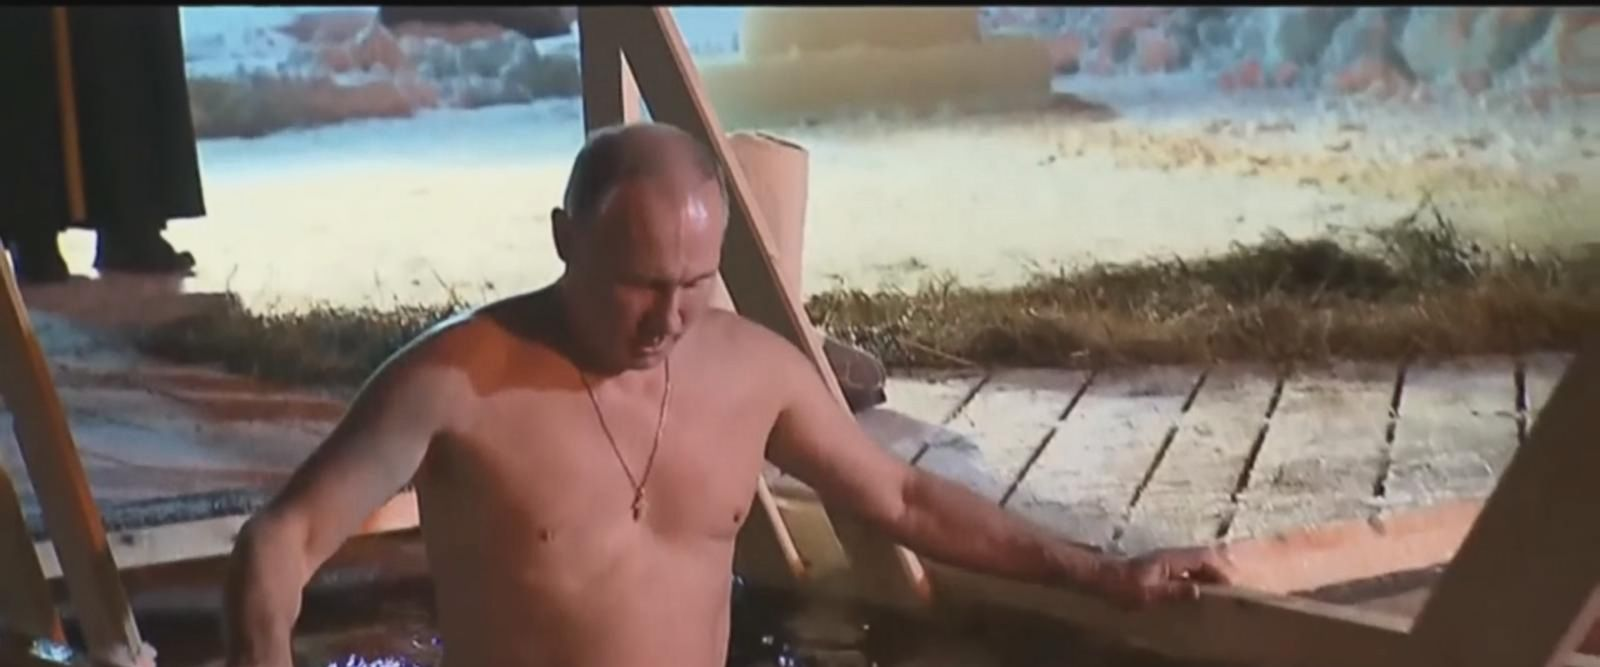 The brawny, bare-chested Russian leader, 65, was photographed Thursday taking a dip in the frigid cold waters of Lake Seliger, located about five hours northwest of Moscow.